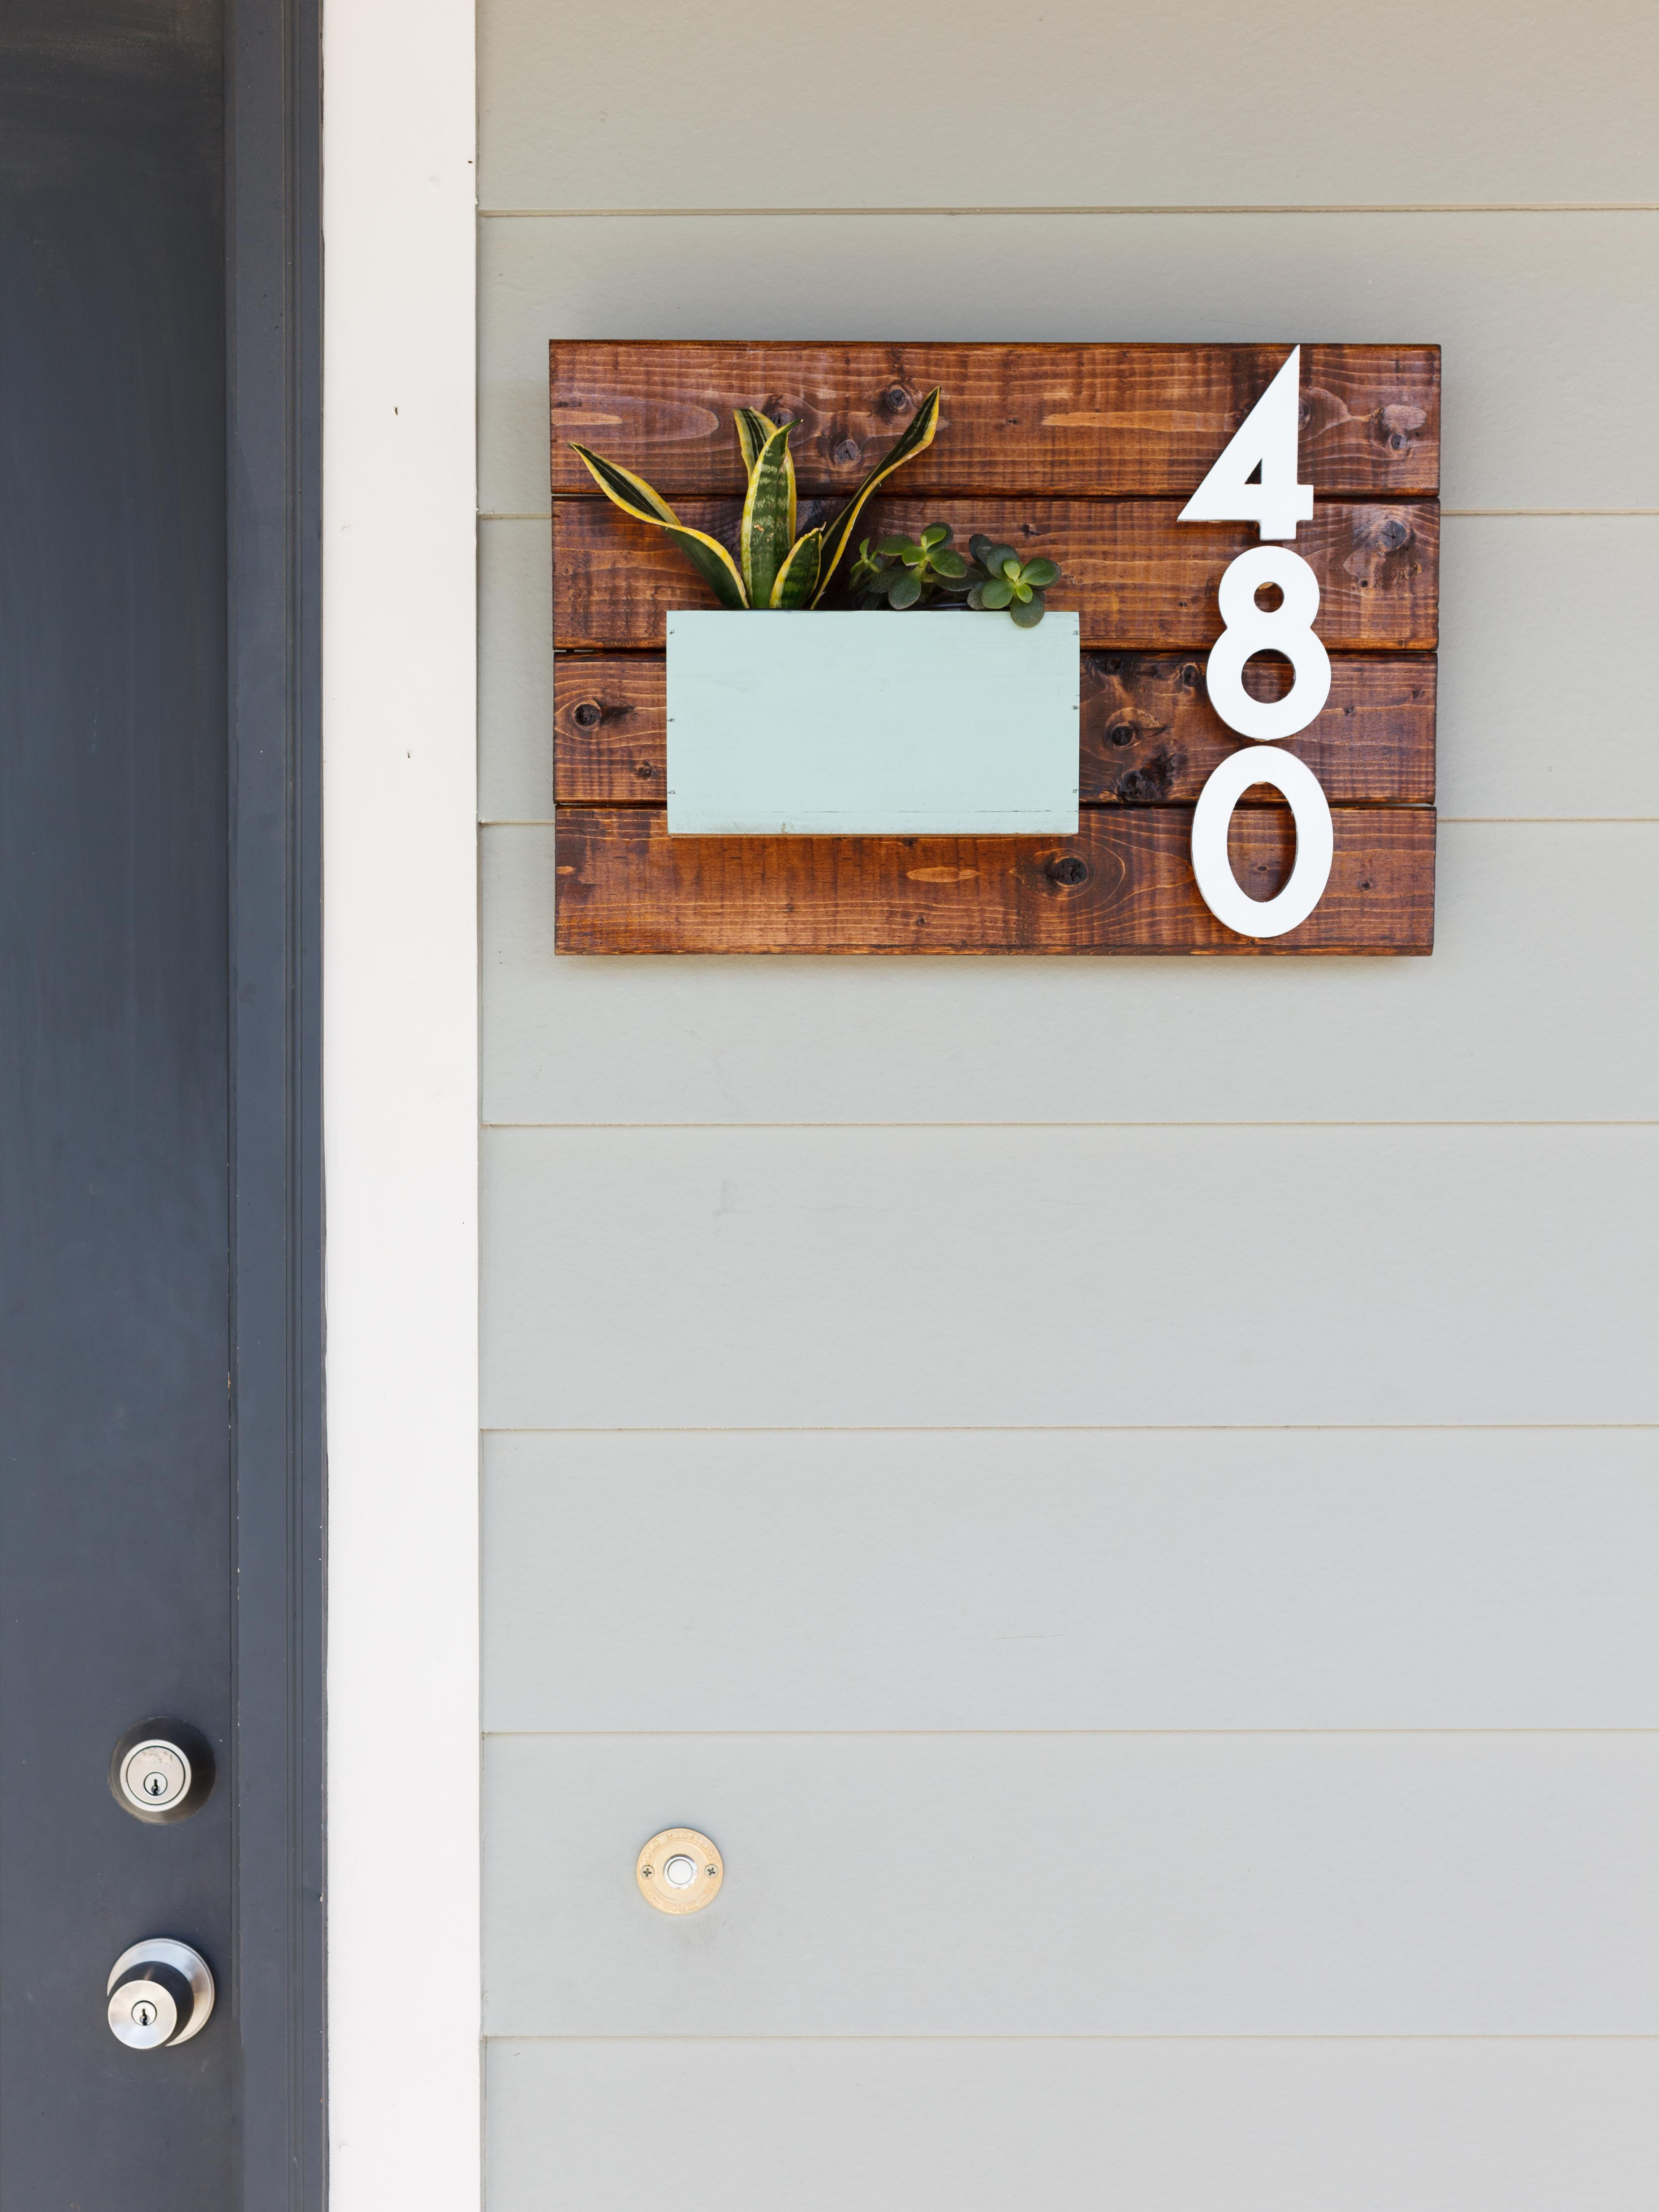 Create custom  modern house address numbers with your Cricut Explore     Create custom  modern house address numbers with your Cricut Explore  machine and chipboard